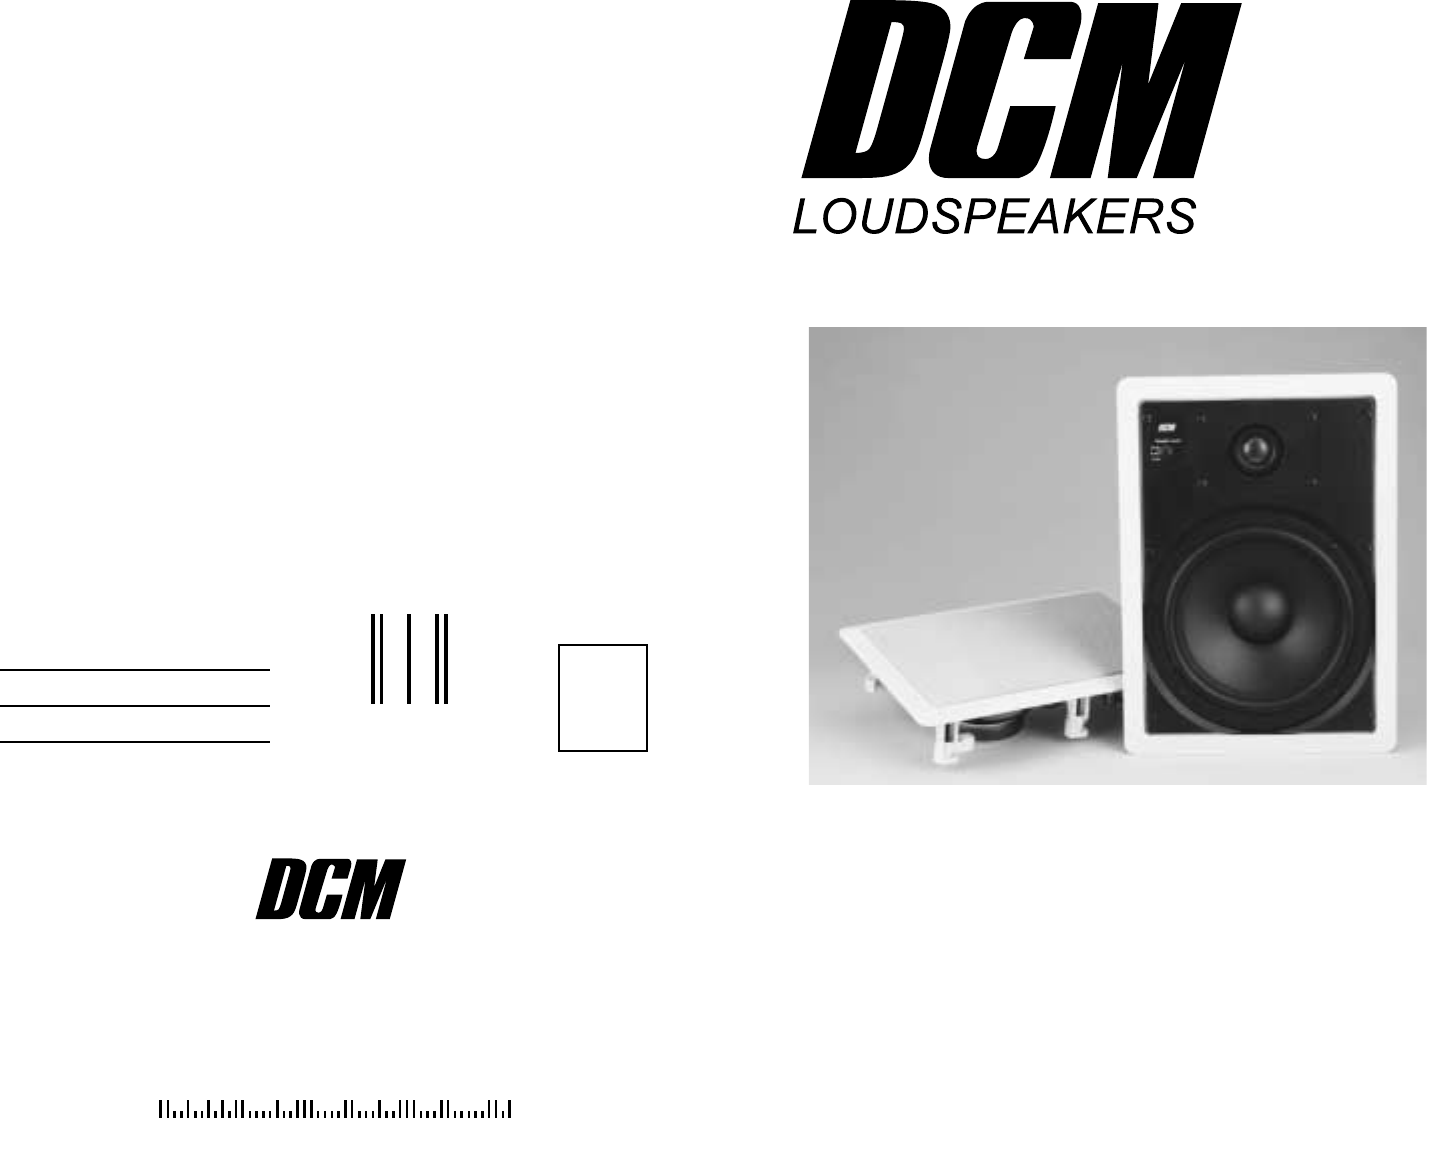 dcm speakers portable speaker w625 user guide manualsonline com rh portablemedia manualsonline com Home Theater Drawings Home Theater Seats